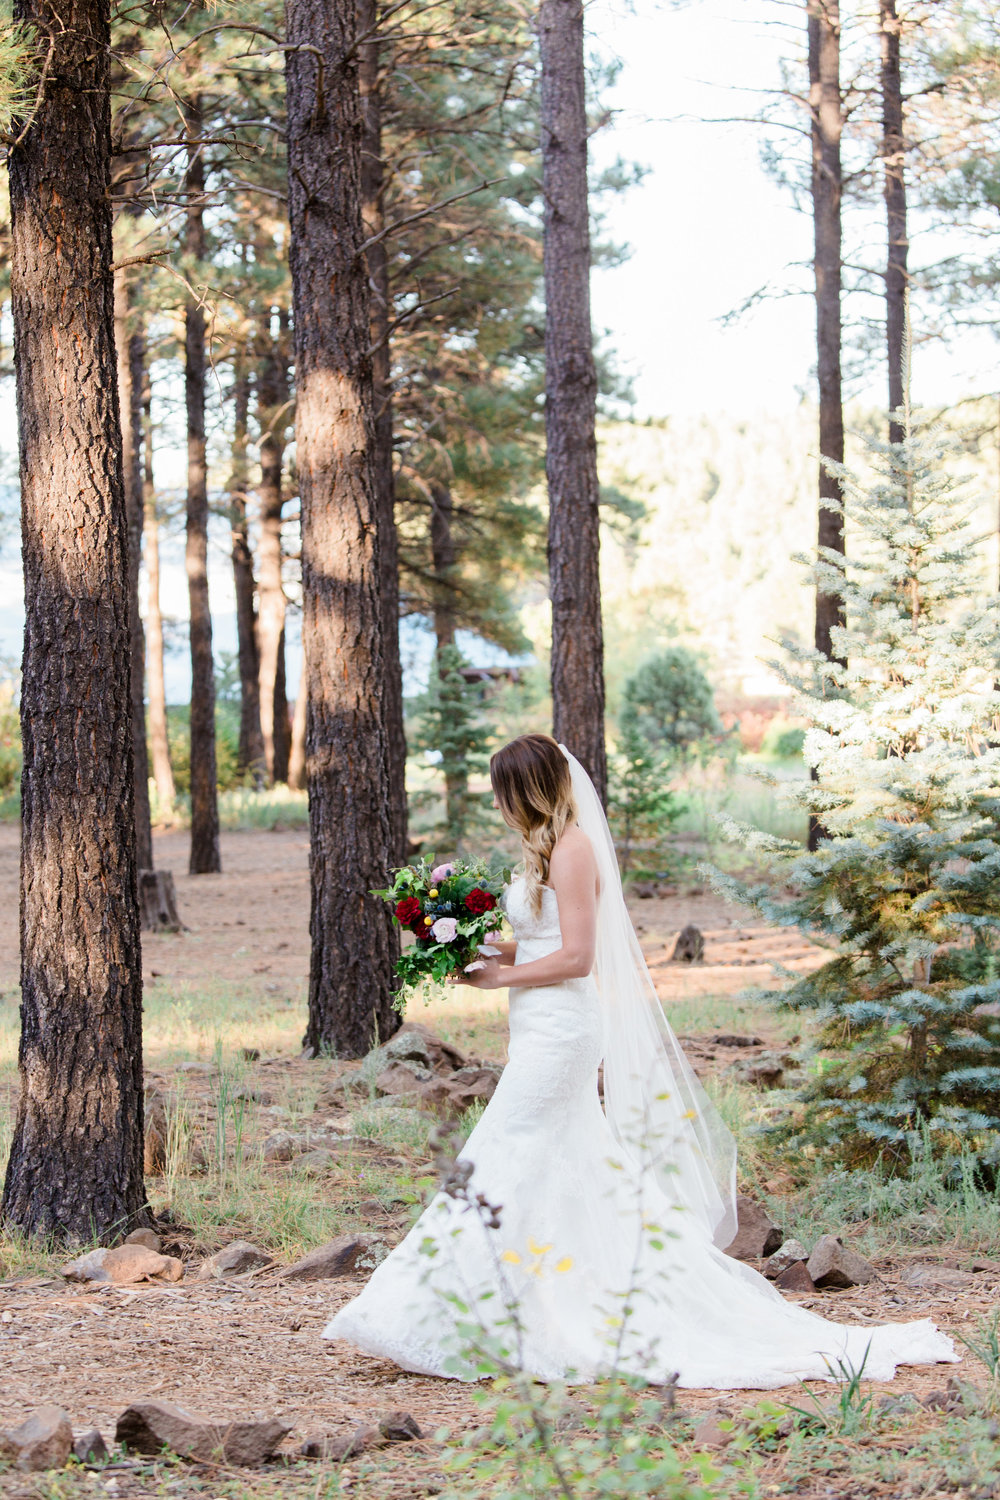 Flagstaff Forest Wedding - Bride